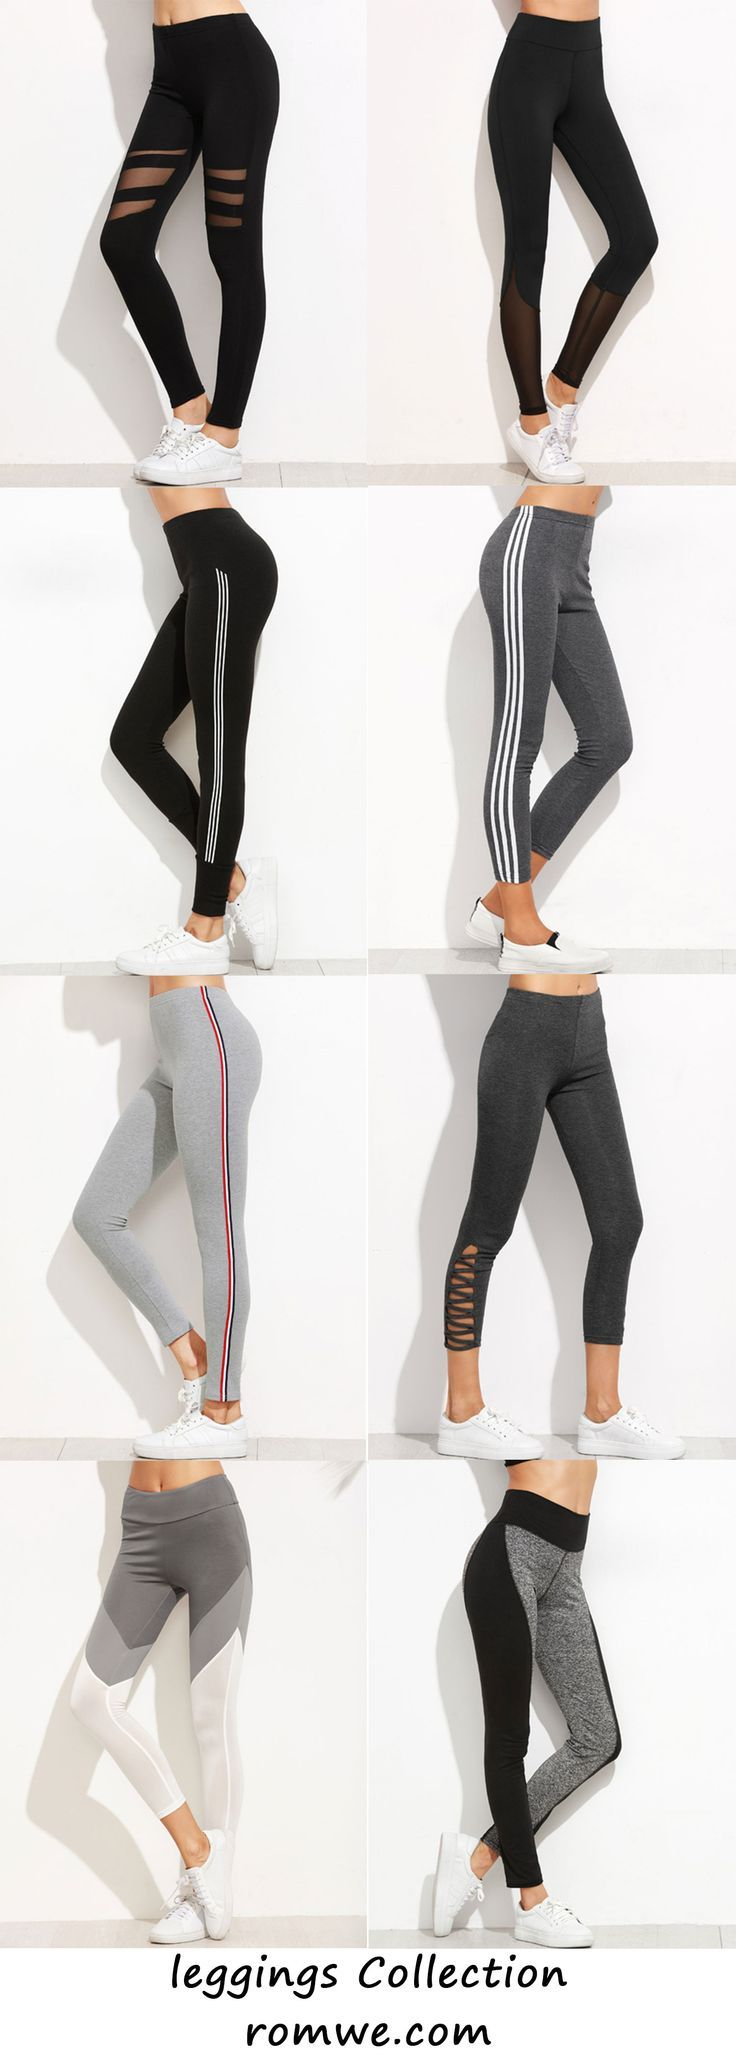 Legging Collection 2016 - http://romwe.com